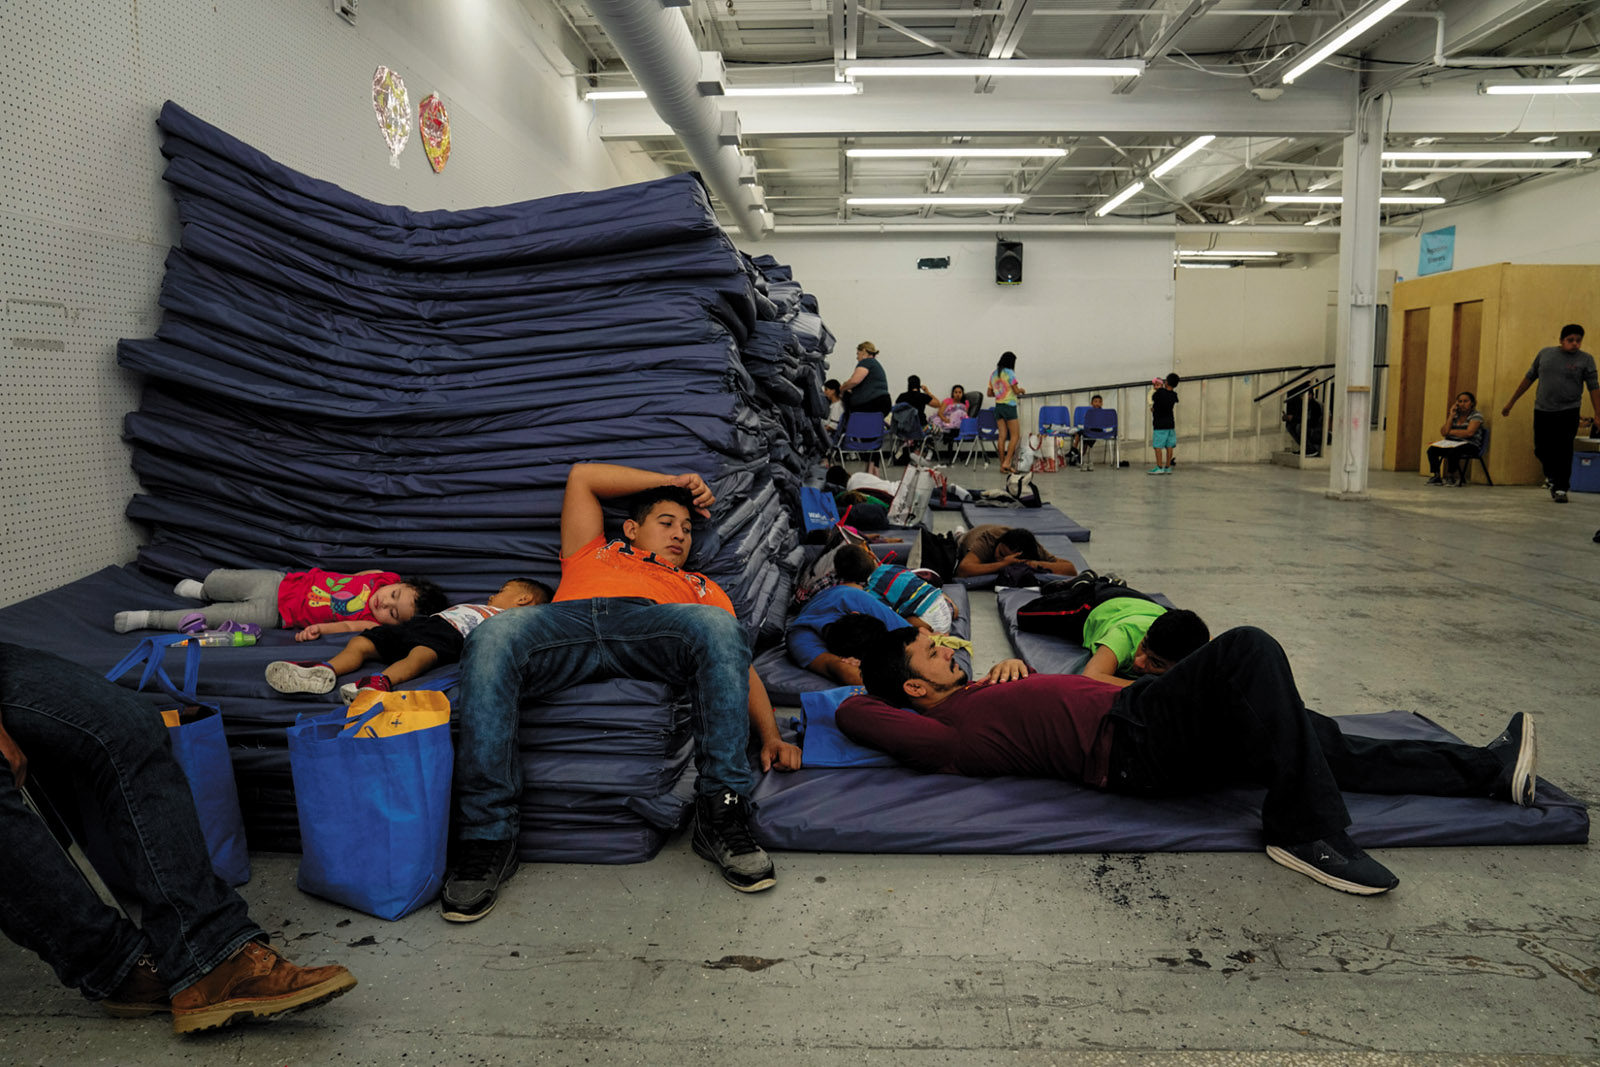 Asylum-seekers at the Humanitarian Respite Center, McAllen, Texas, August 2019